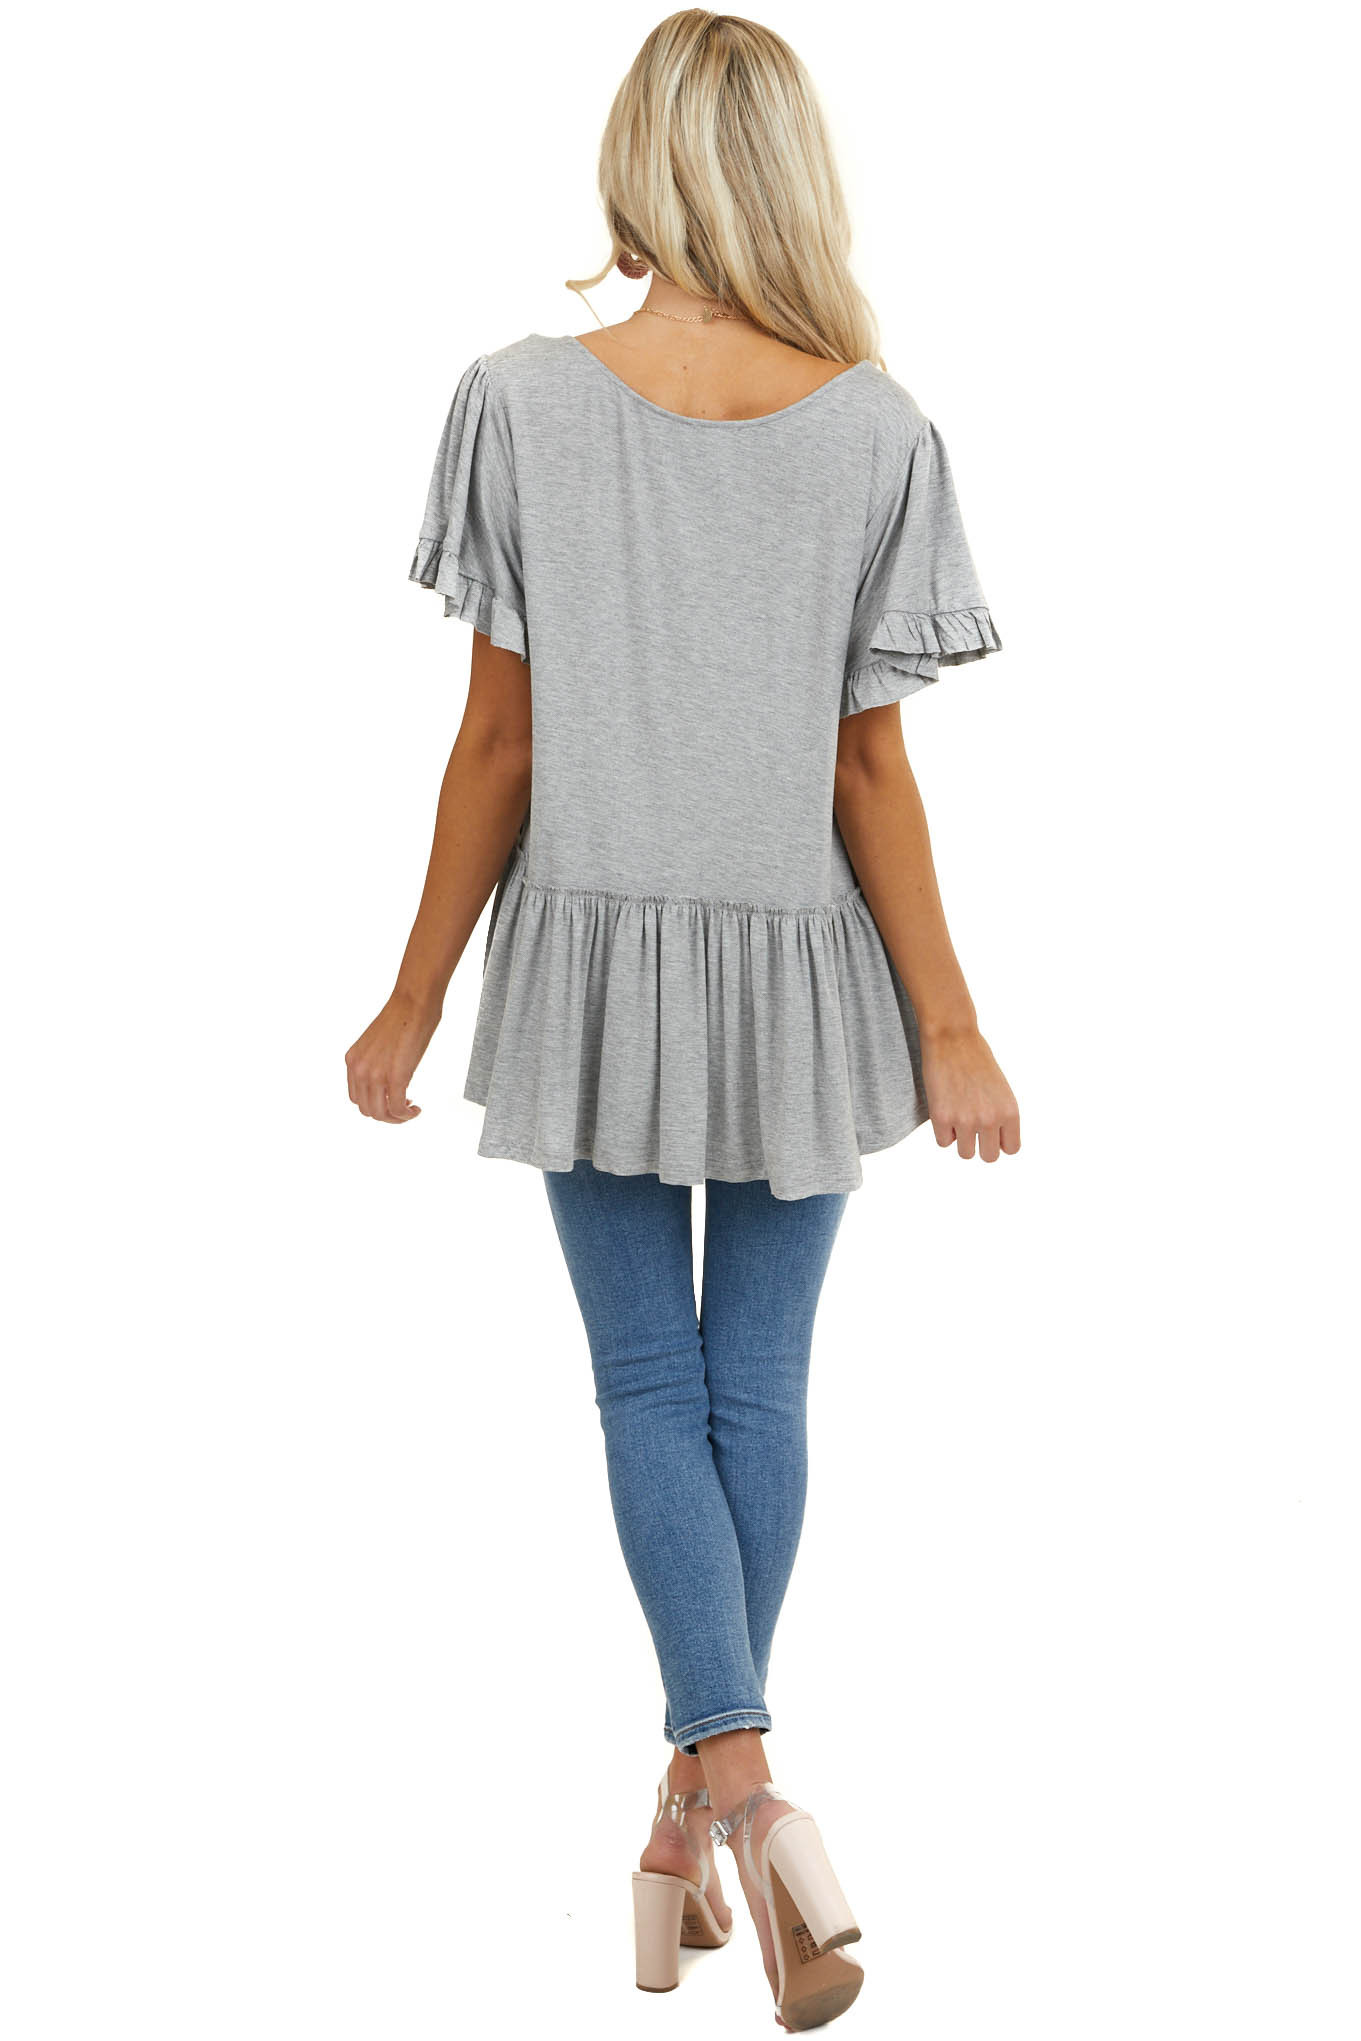 Heathered Dove Jersey Knit Top with Short Ruffle Sleeves